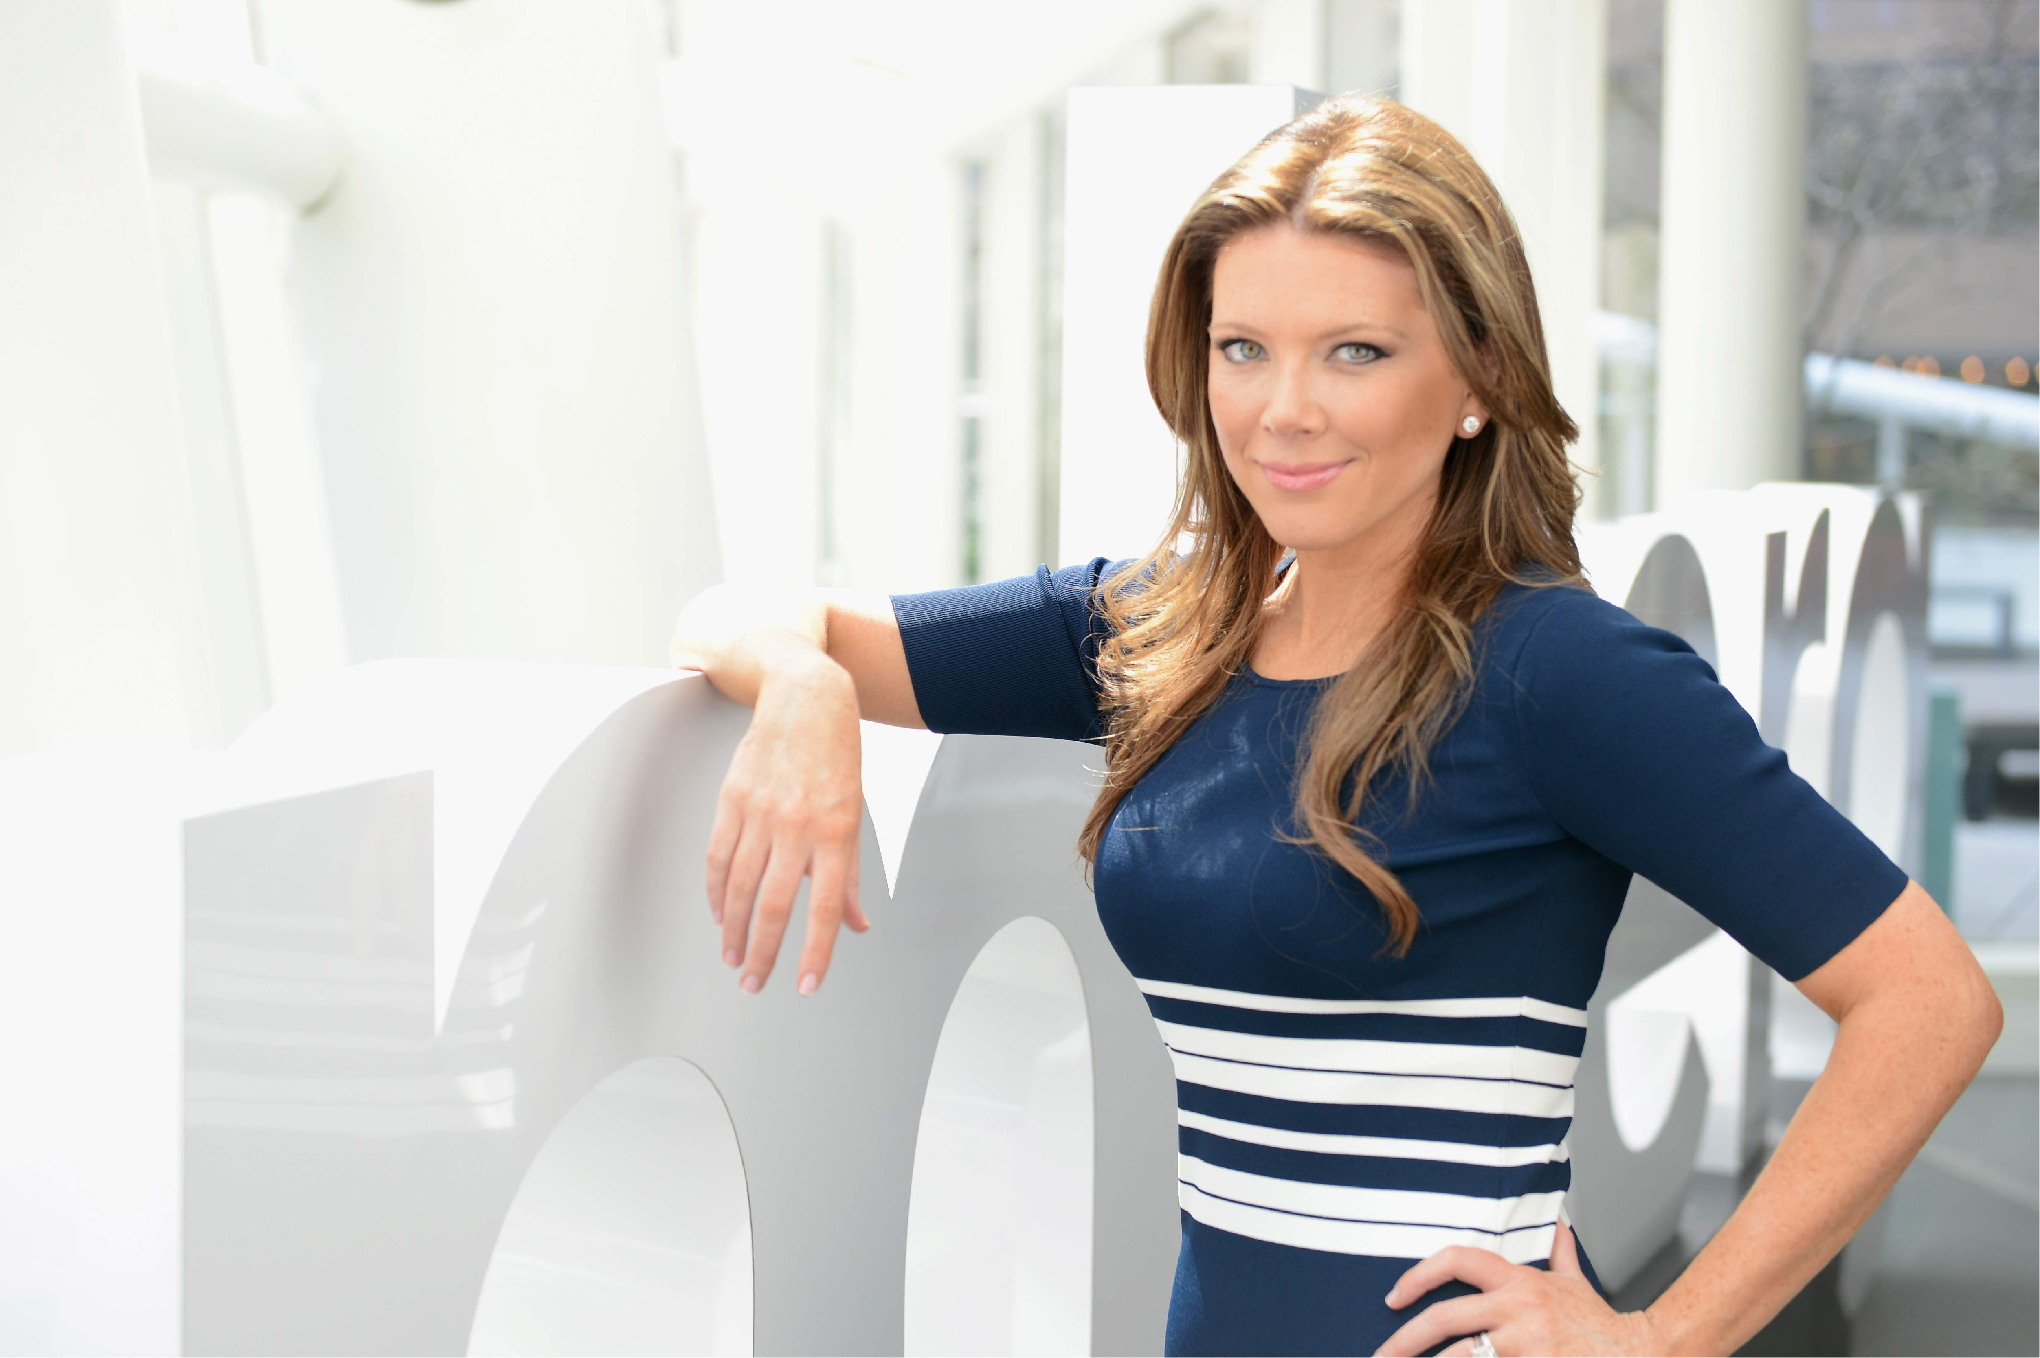 1 Trish Regan Hd Wallpapers  Backgrounds - Wallpaper Abyss-3642